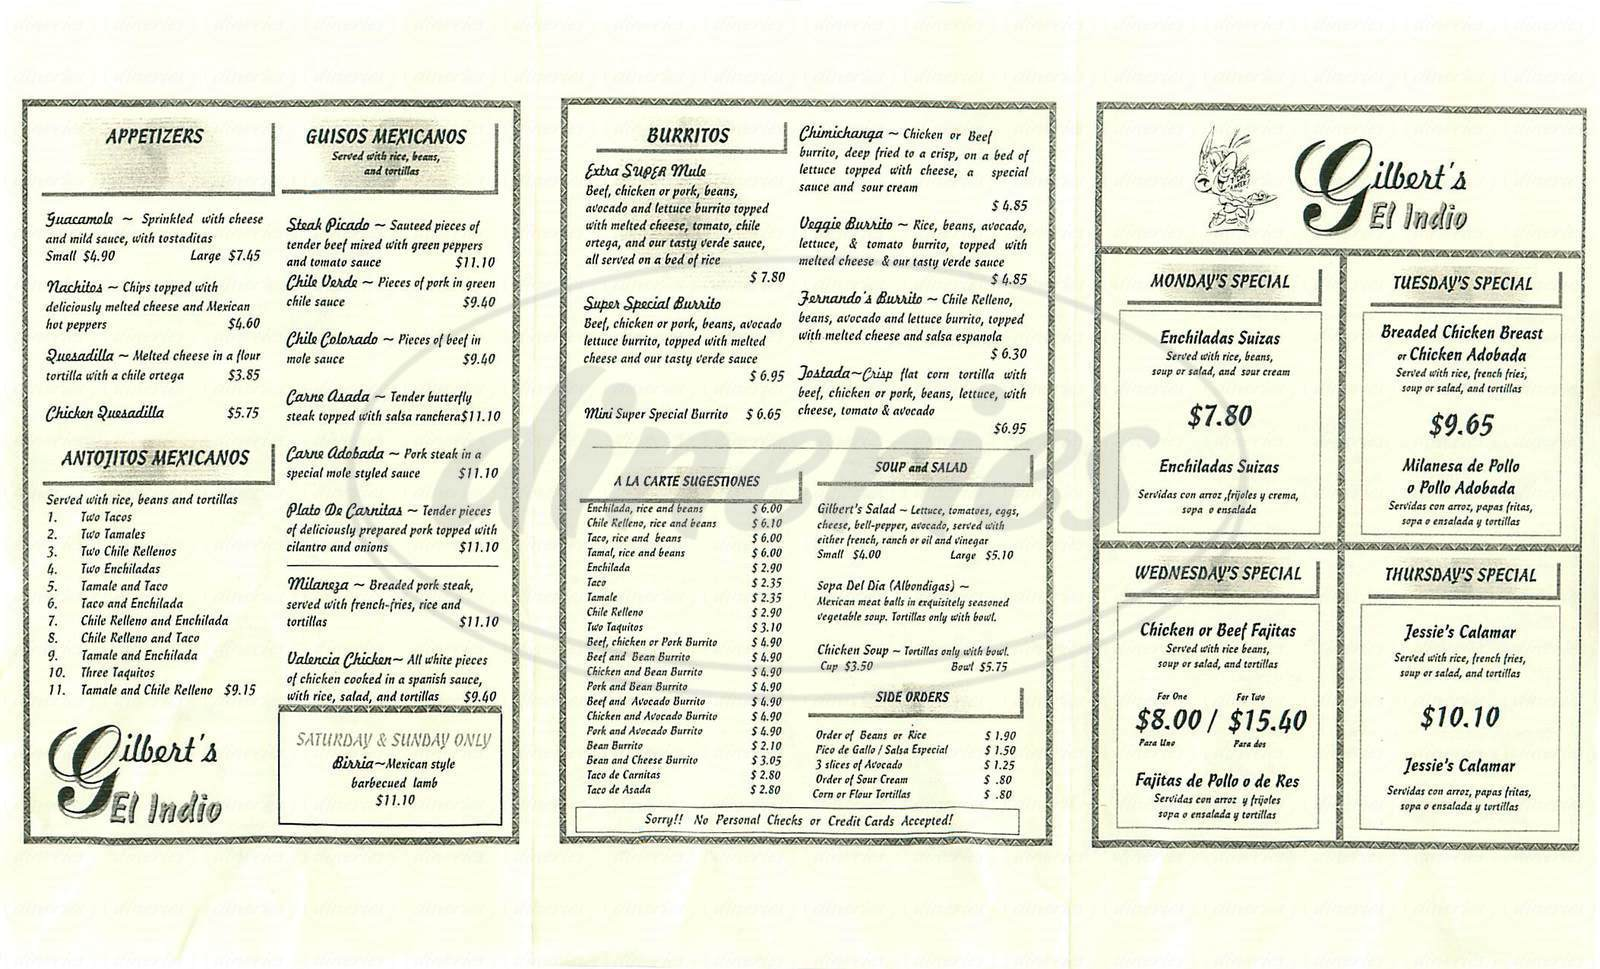 menu for Gilbert's El Indio